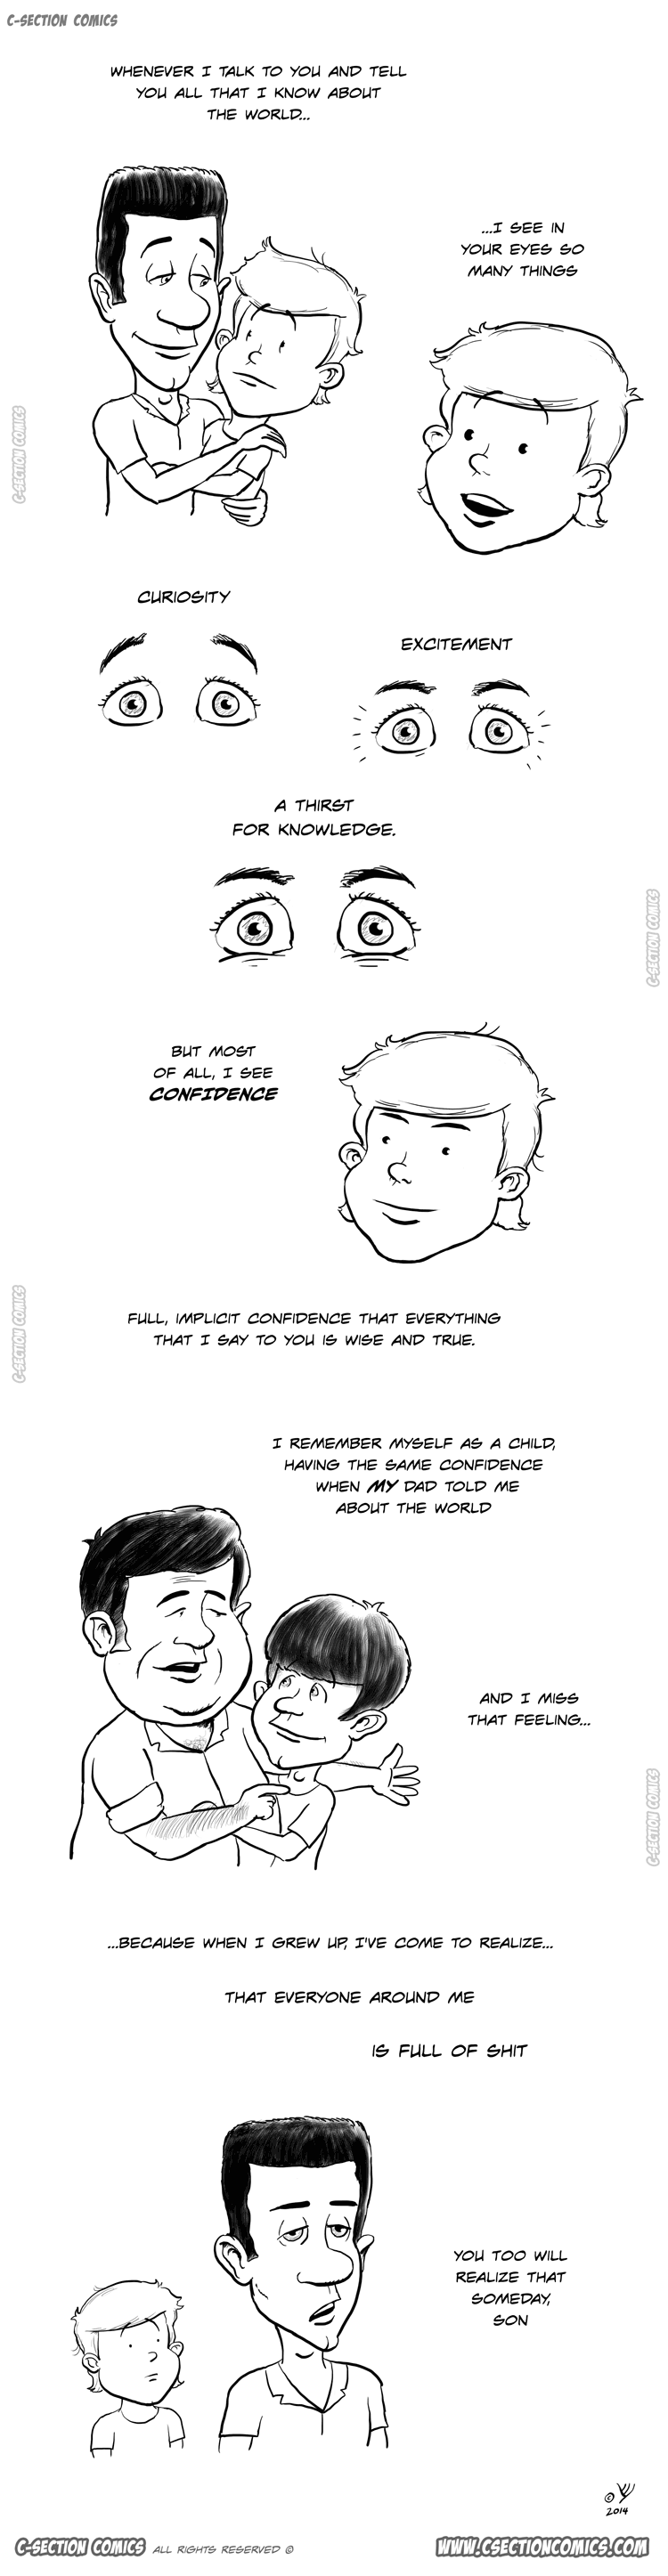 Son, This Is What You Need to Know about the World - Father's day cartoon by C-Section Comics